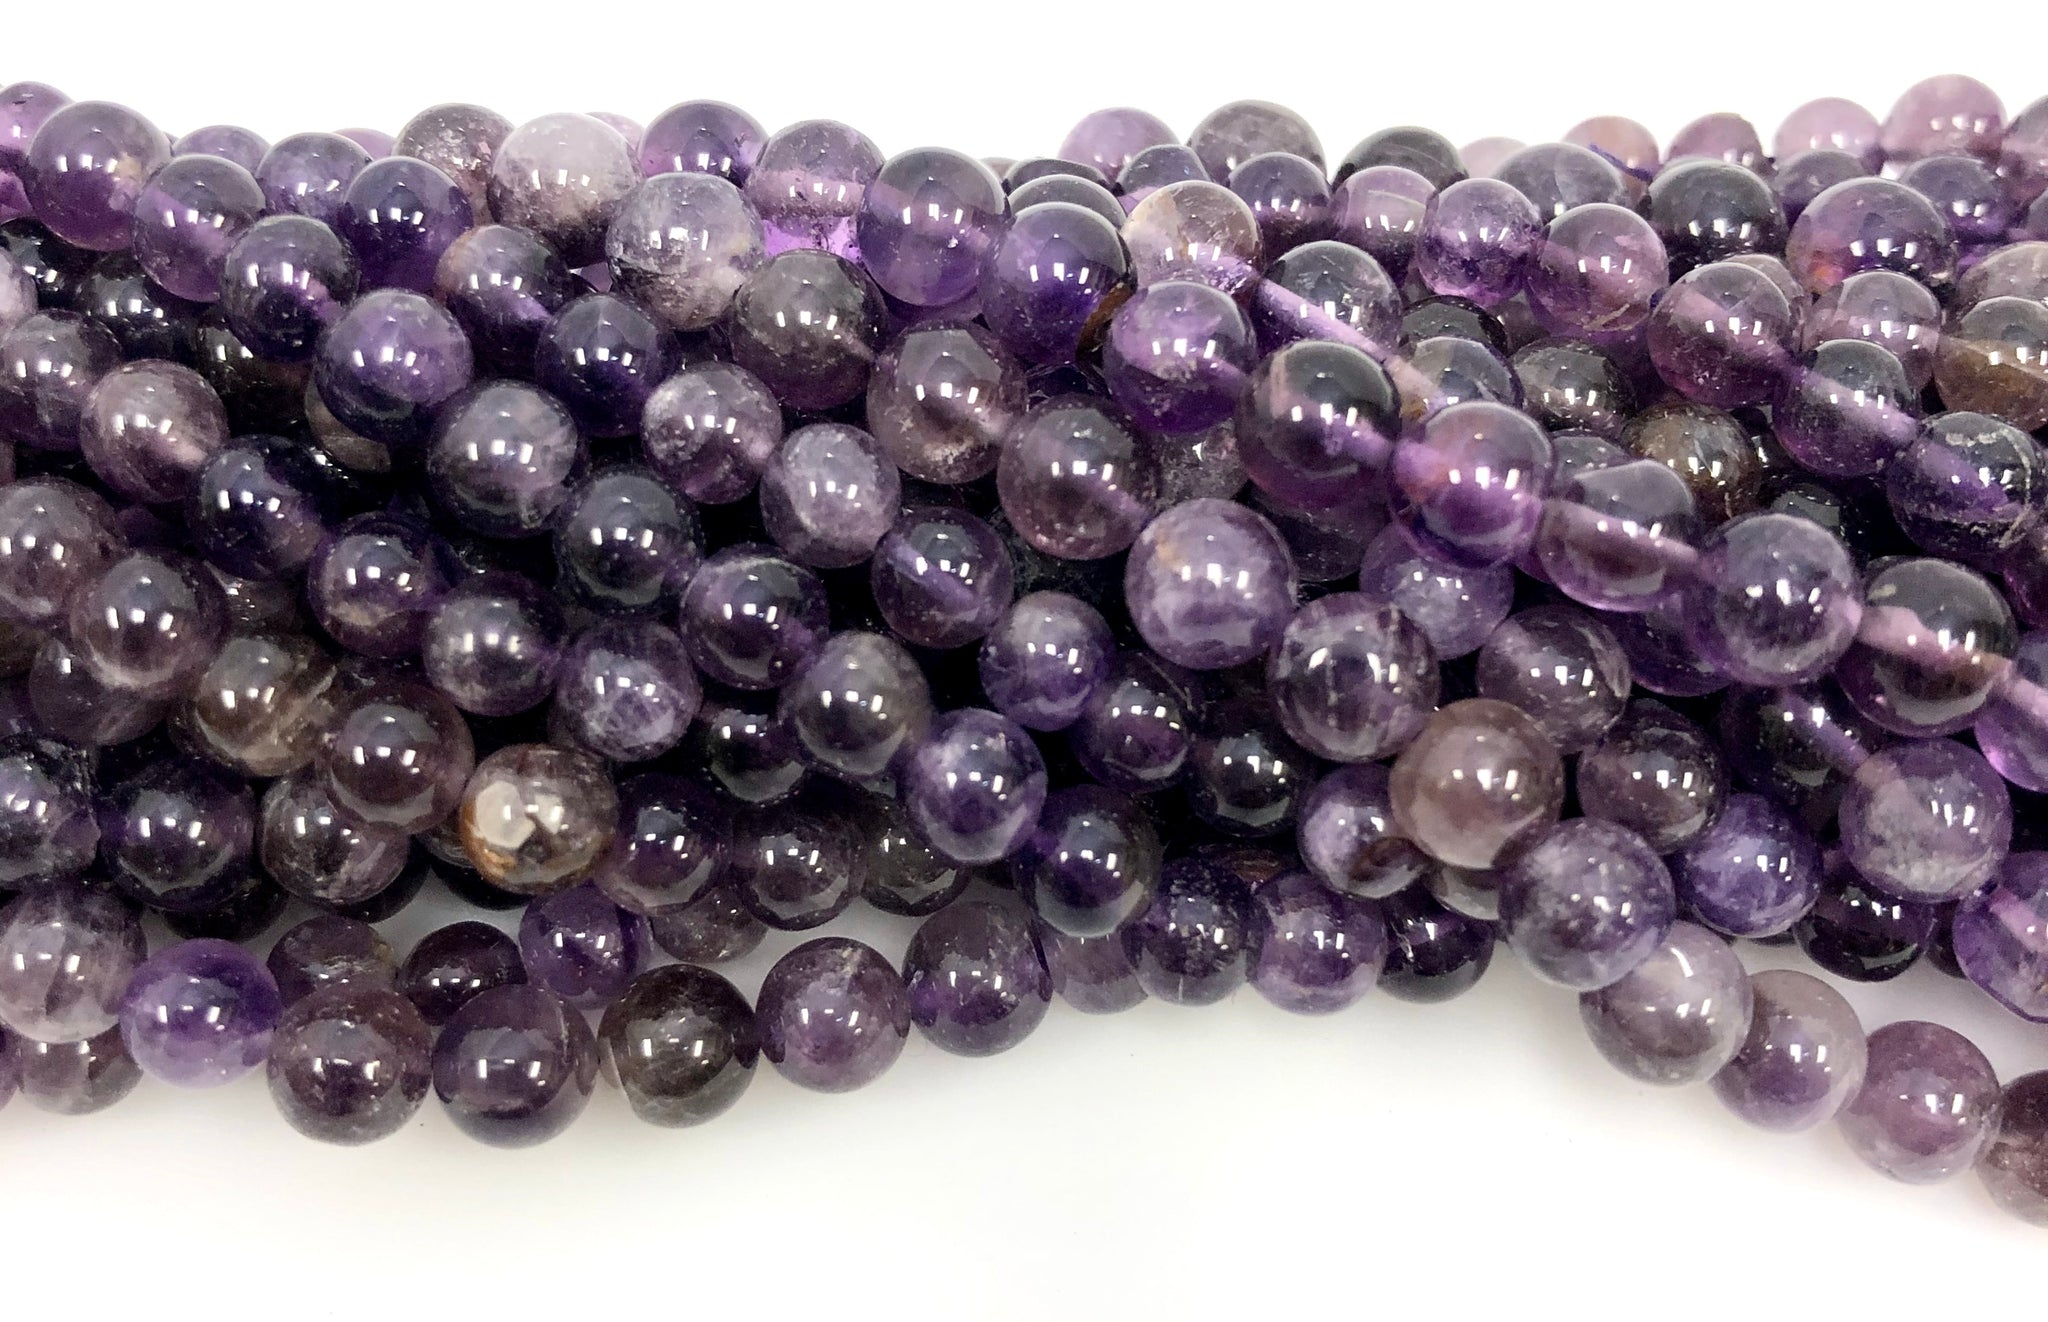 Natural Amethyst Beads, Round Shape Beads, Amethyst Smooth Beads